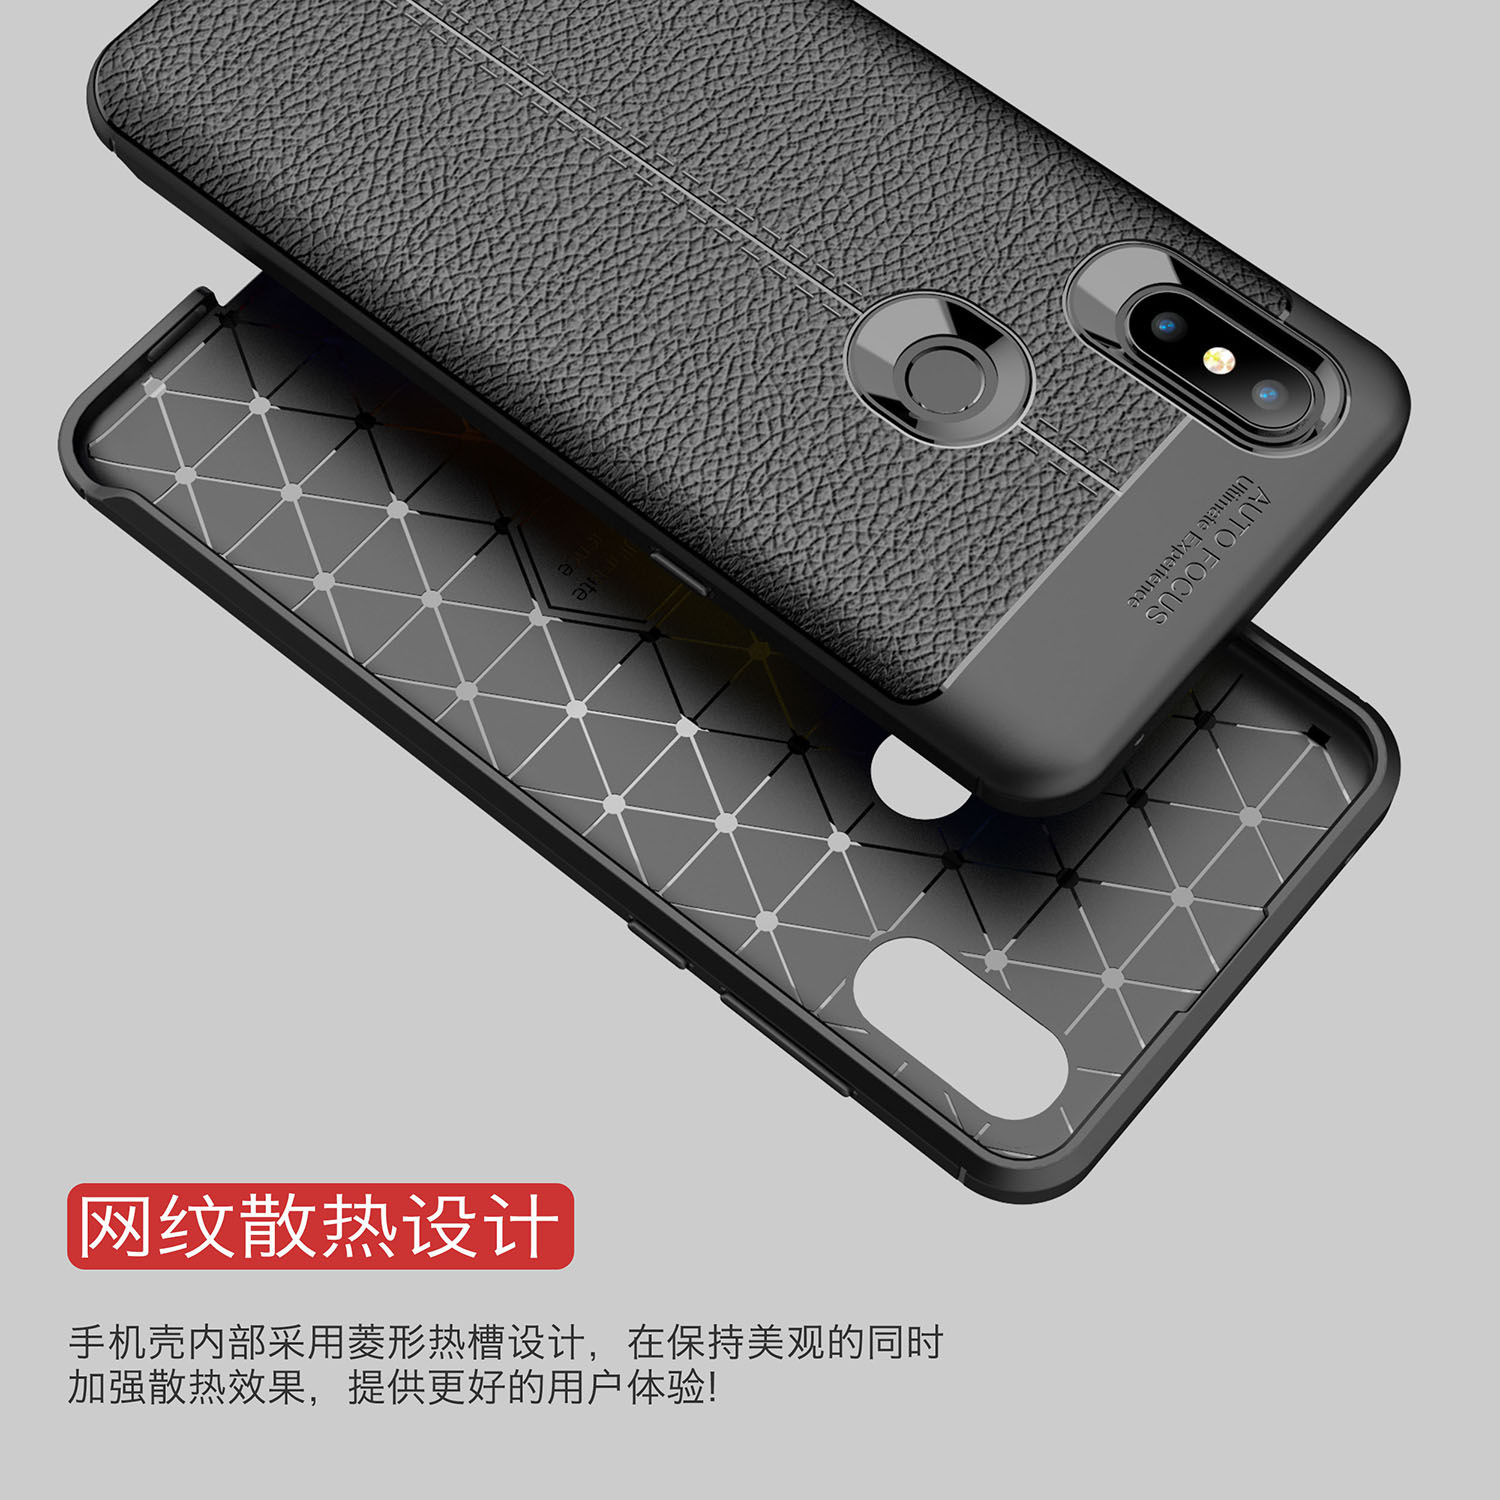 BSNOVT sFor Xiaomi Mi Mix 3 Case Cover Soft Silicone TPU Leather Shockproof Phone For Case Xiaomi Mi Mix3 Fundas Mi Mix3 6 39 quot in Fitted Cases from Cellphones amp Telecommunications